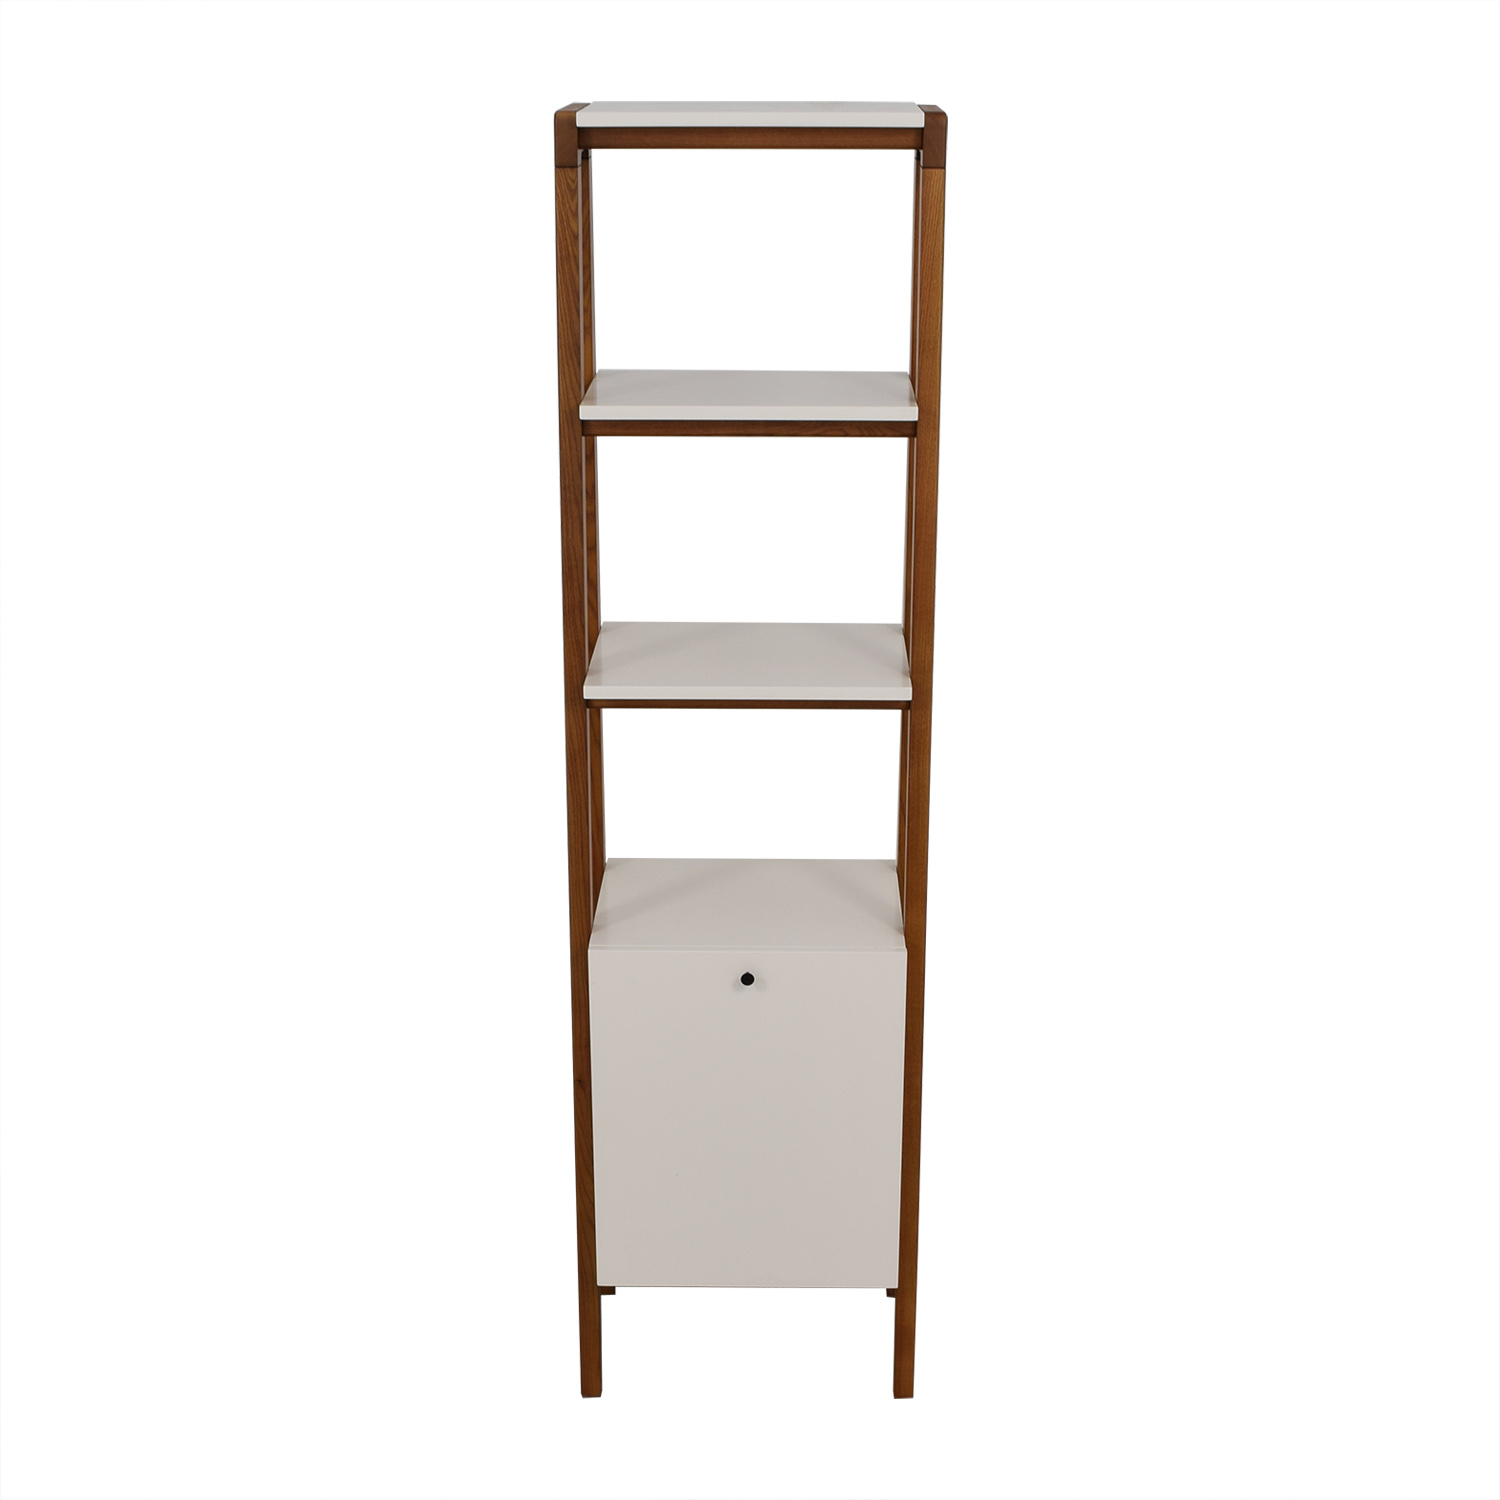 West Elm West Elm Modern Narrow Tower Bookcases & Shelving